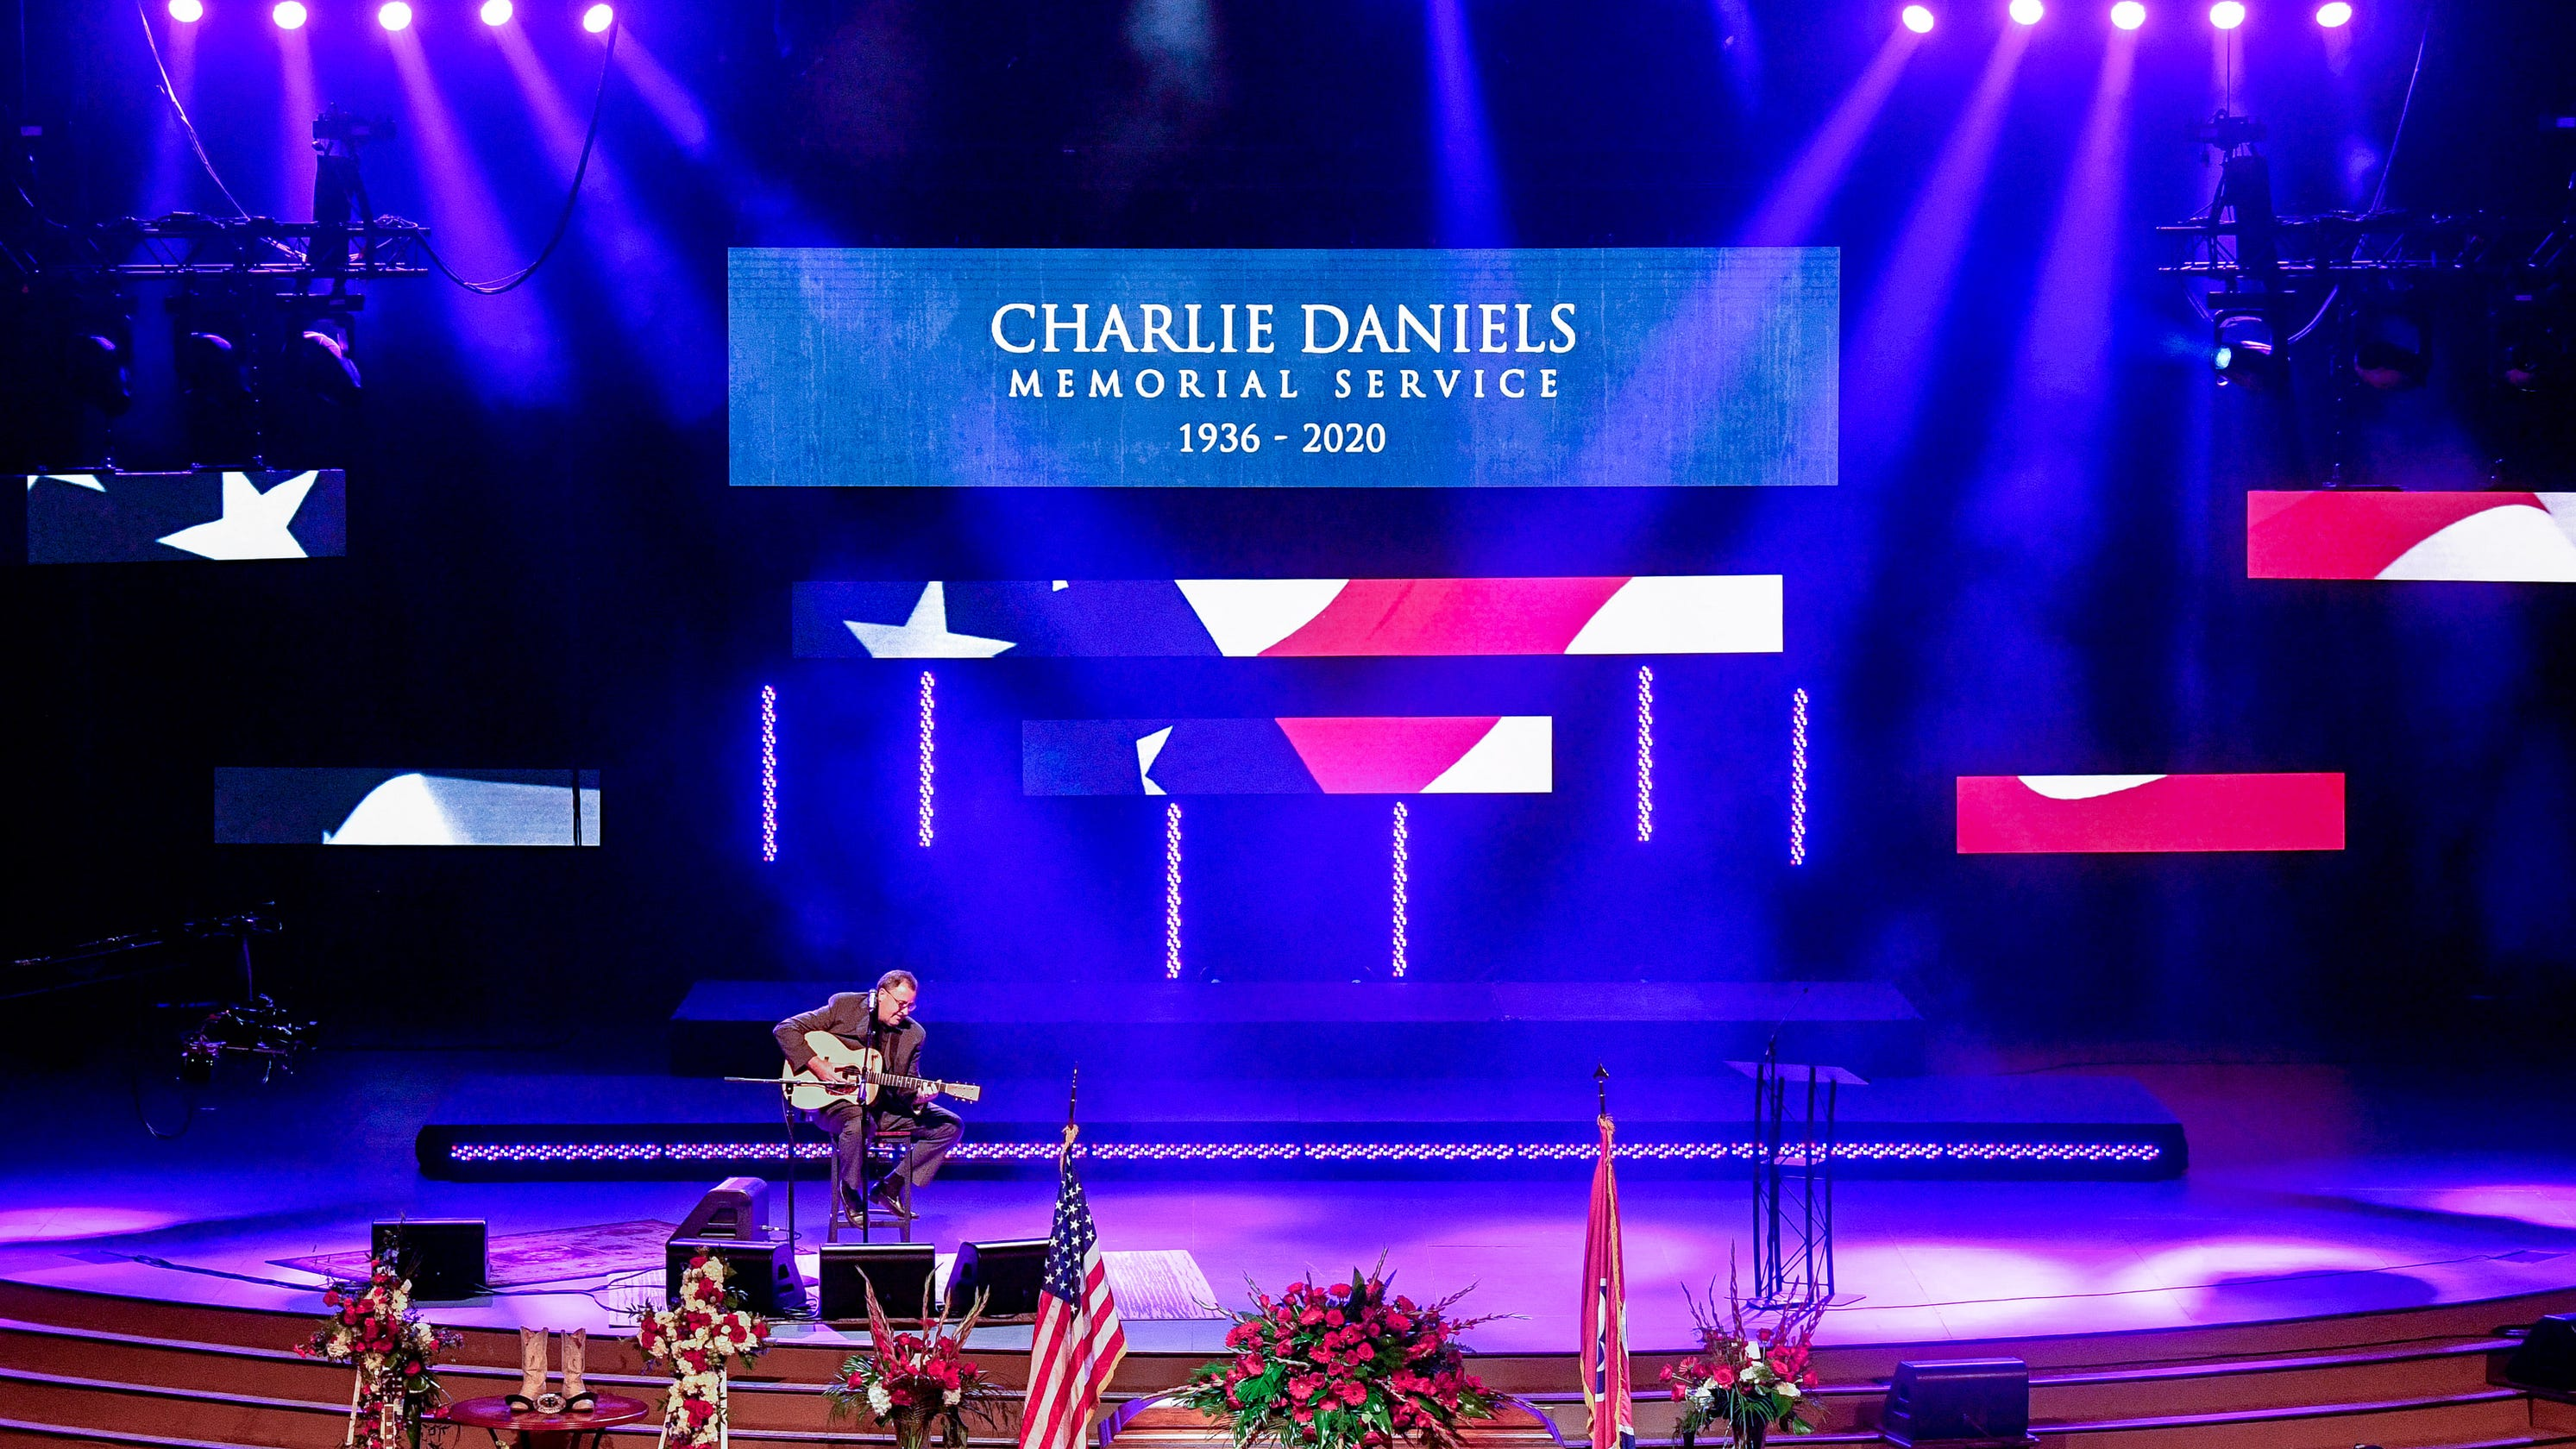 Charlie Daniels funeral: Vince Gill, Travis Tritt and more memorialize Hall of Fame singer